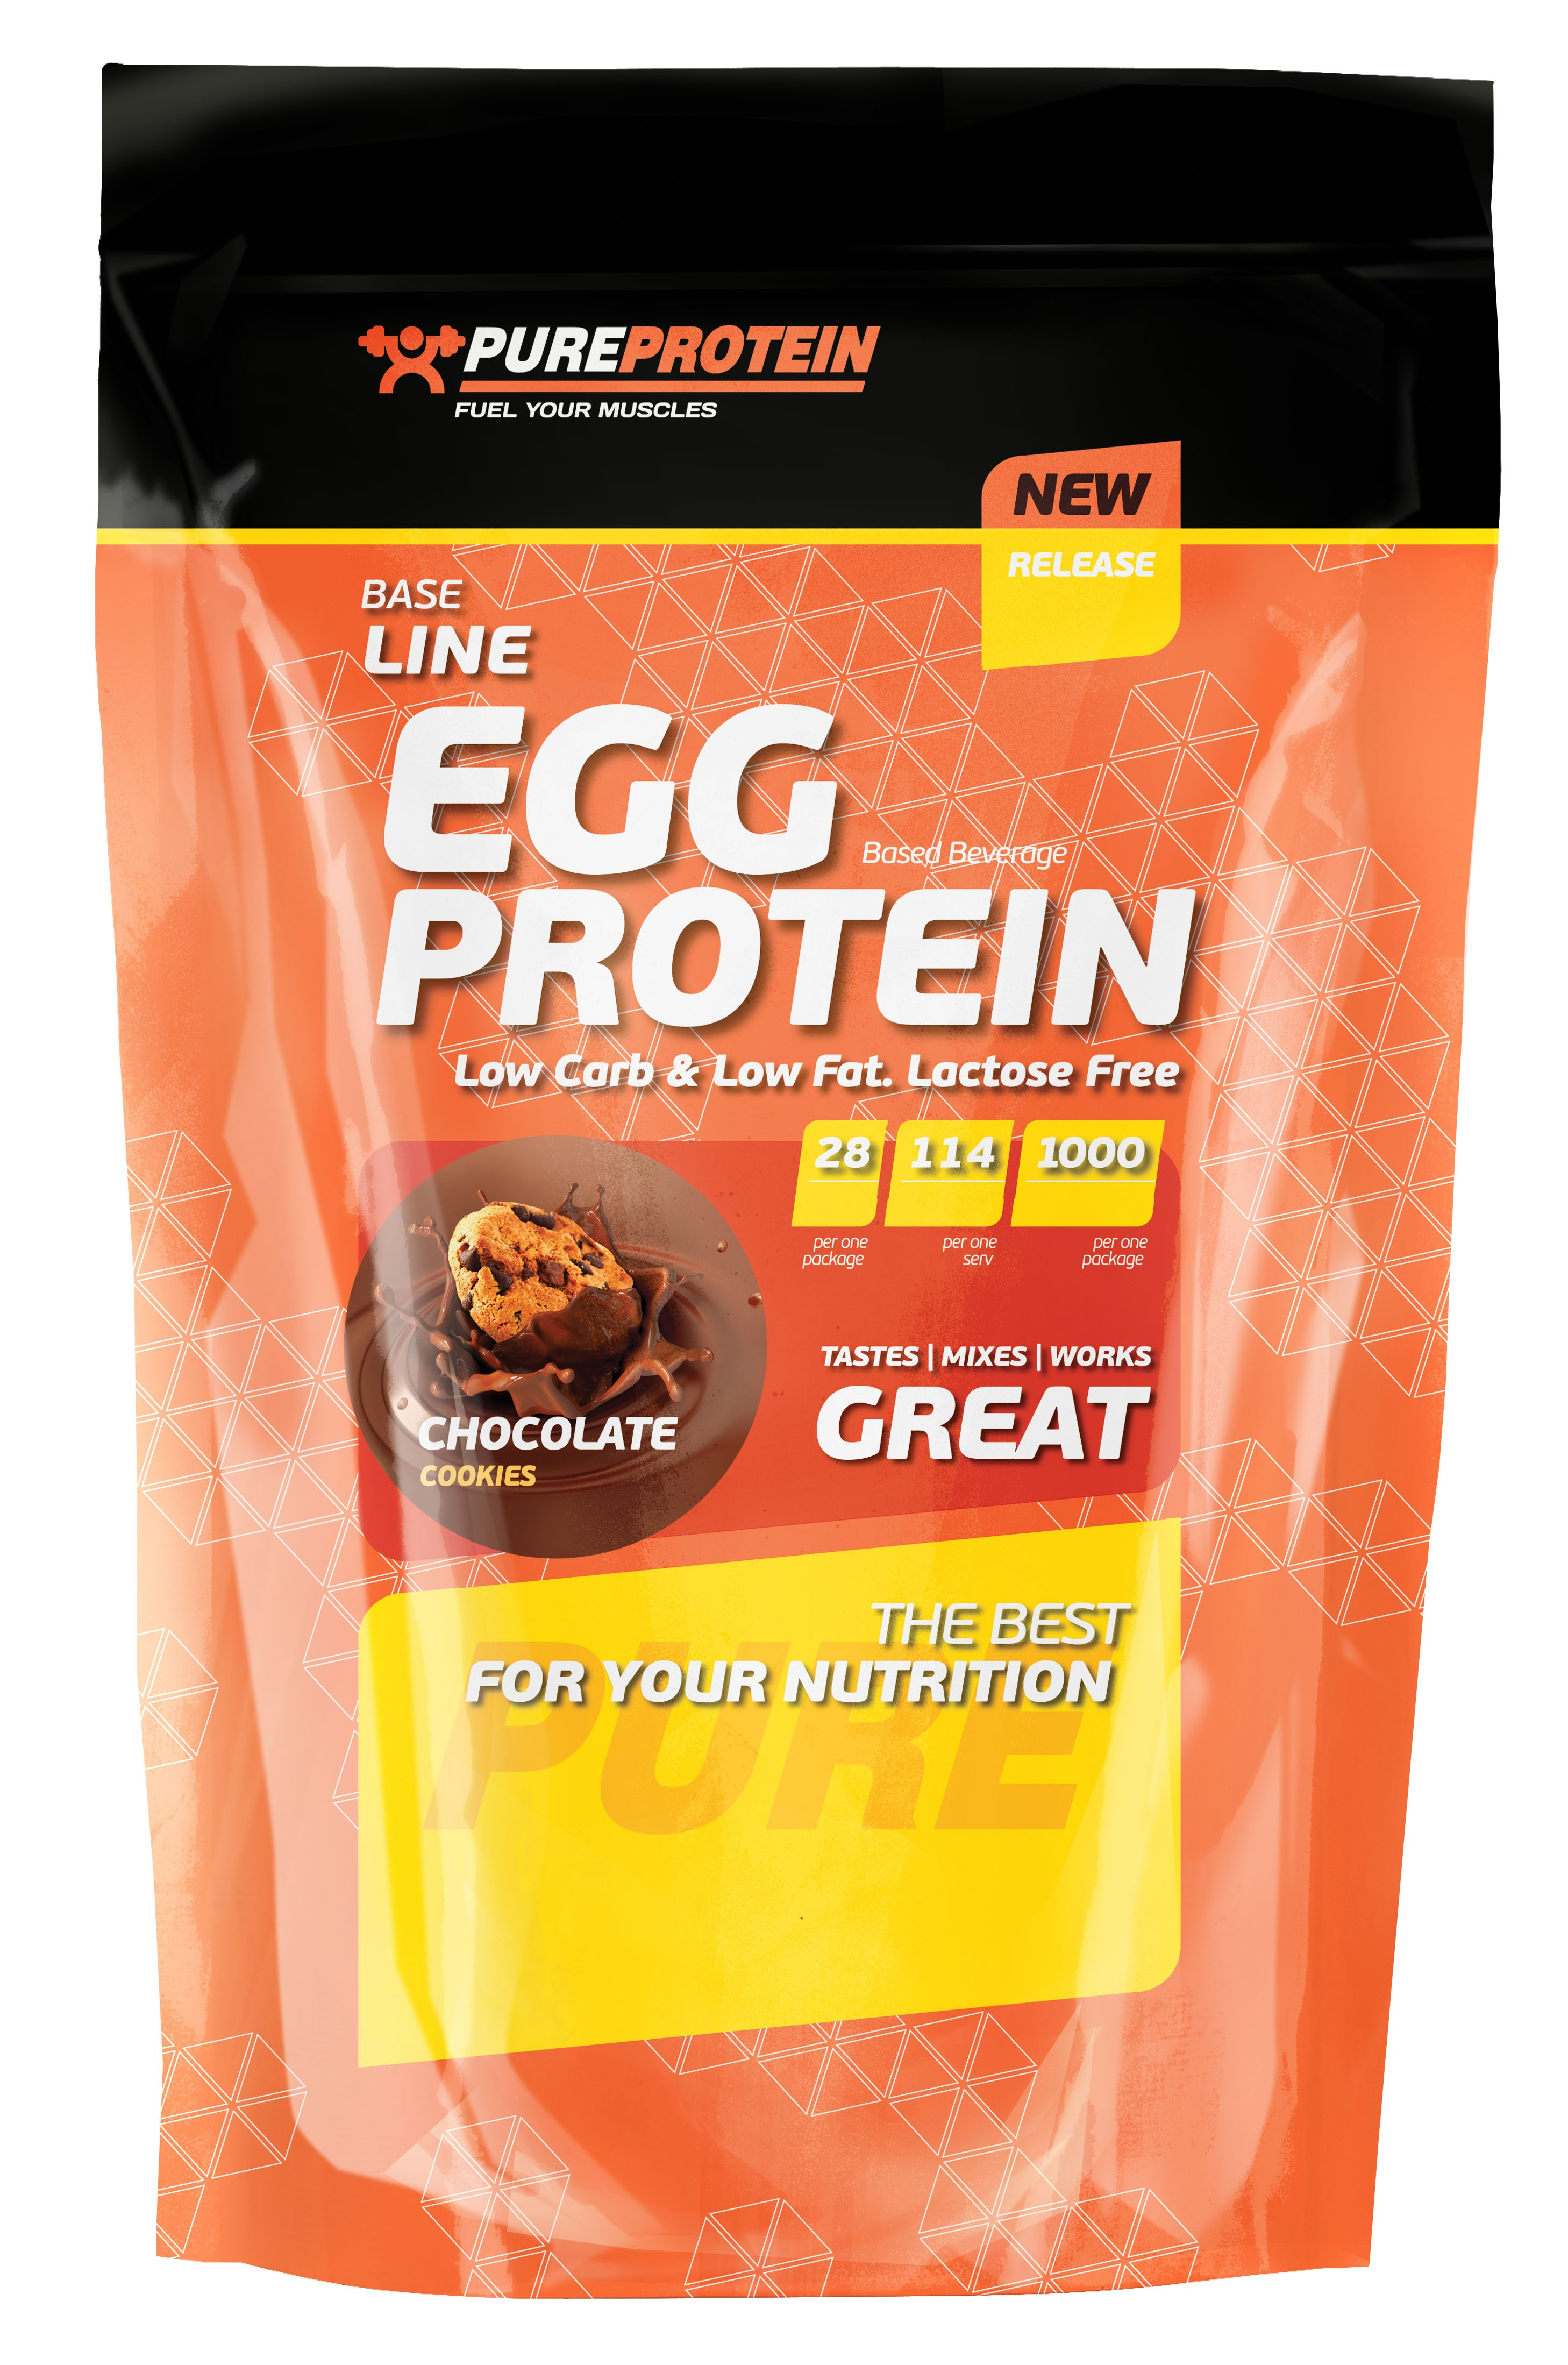 Pure Protein Egg Protein